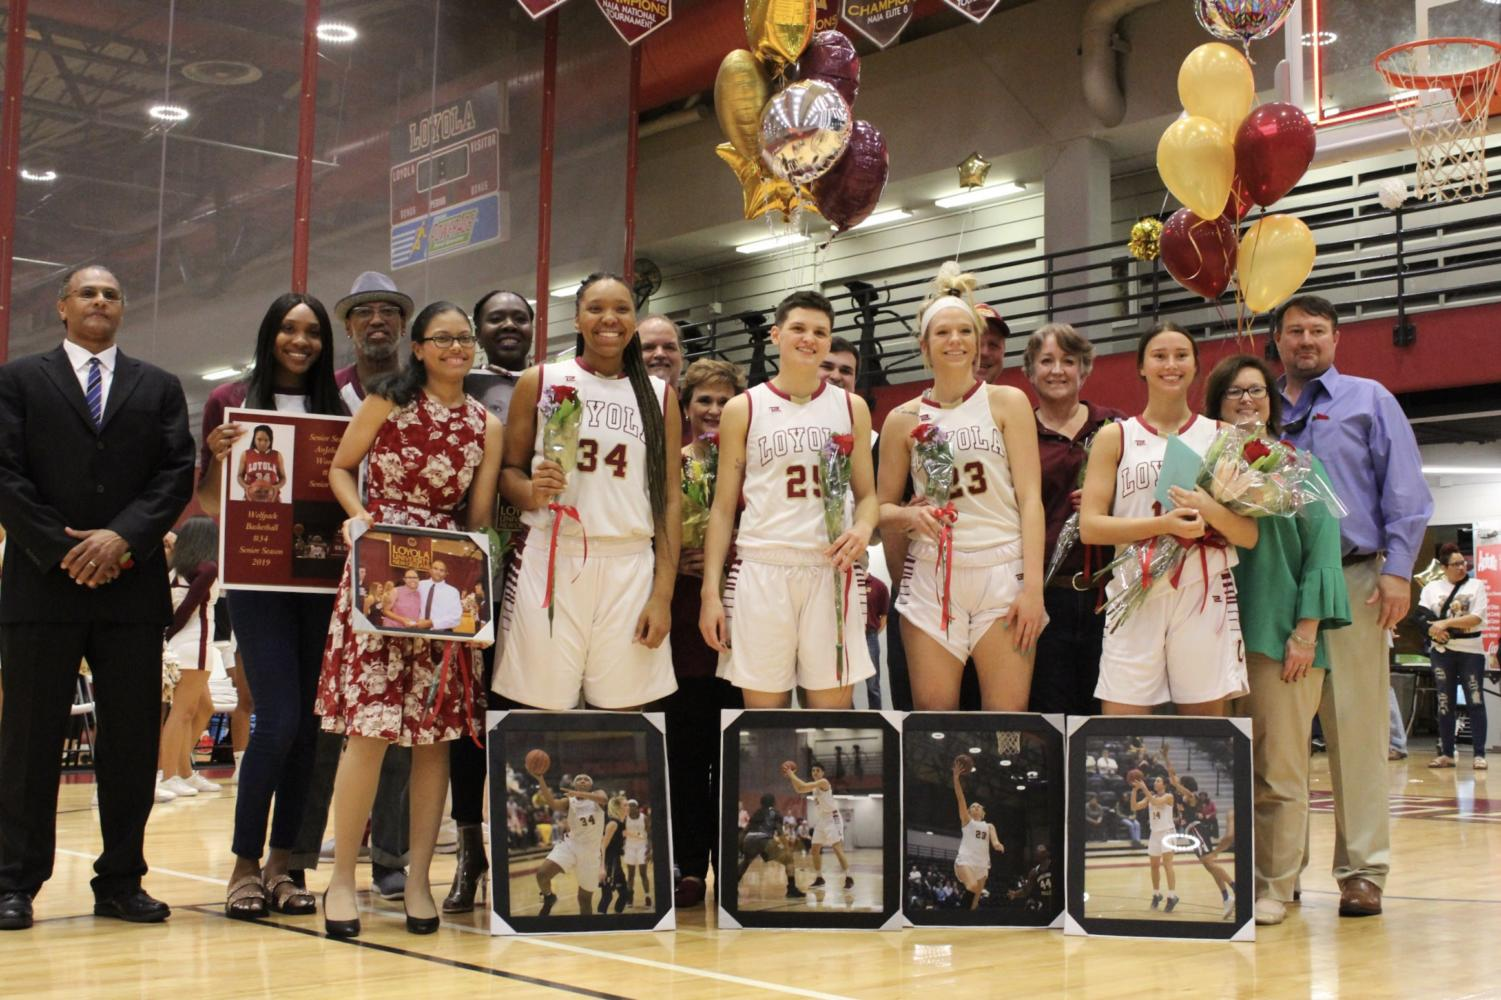 All+senior+members+of+the+women%27s+basketball+team+pose+with+their+families+at+Senior+Night.+Photo+credit%3A+Rosha%27E+Gibson